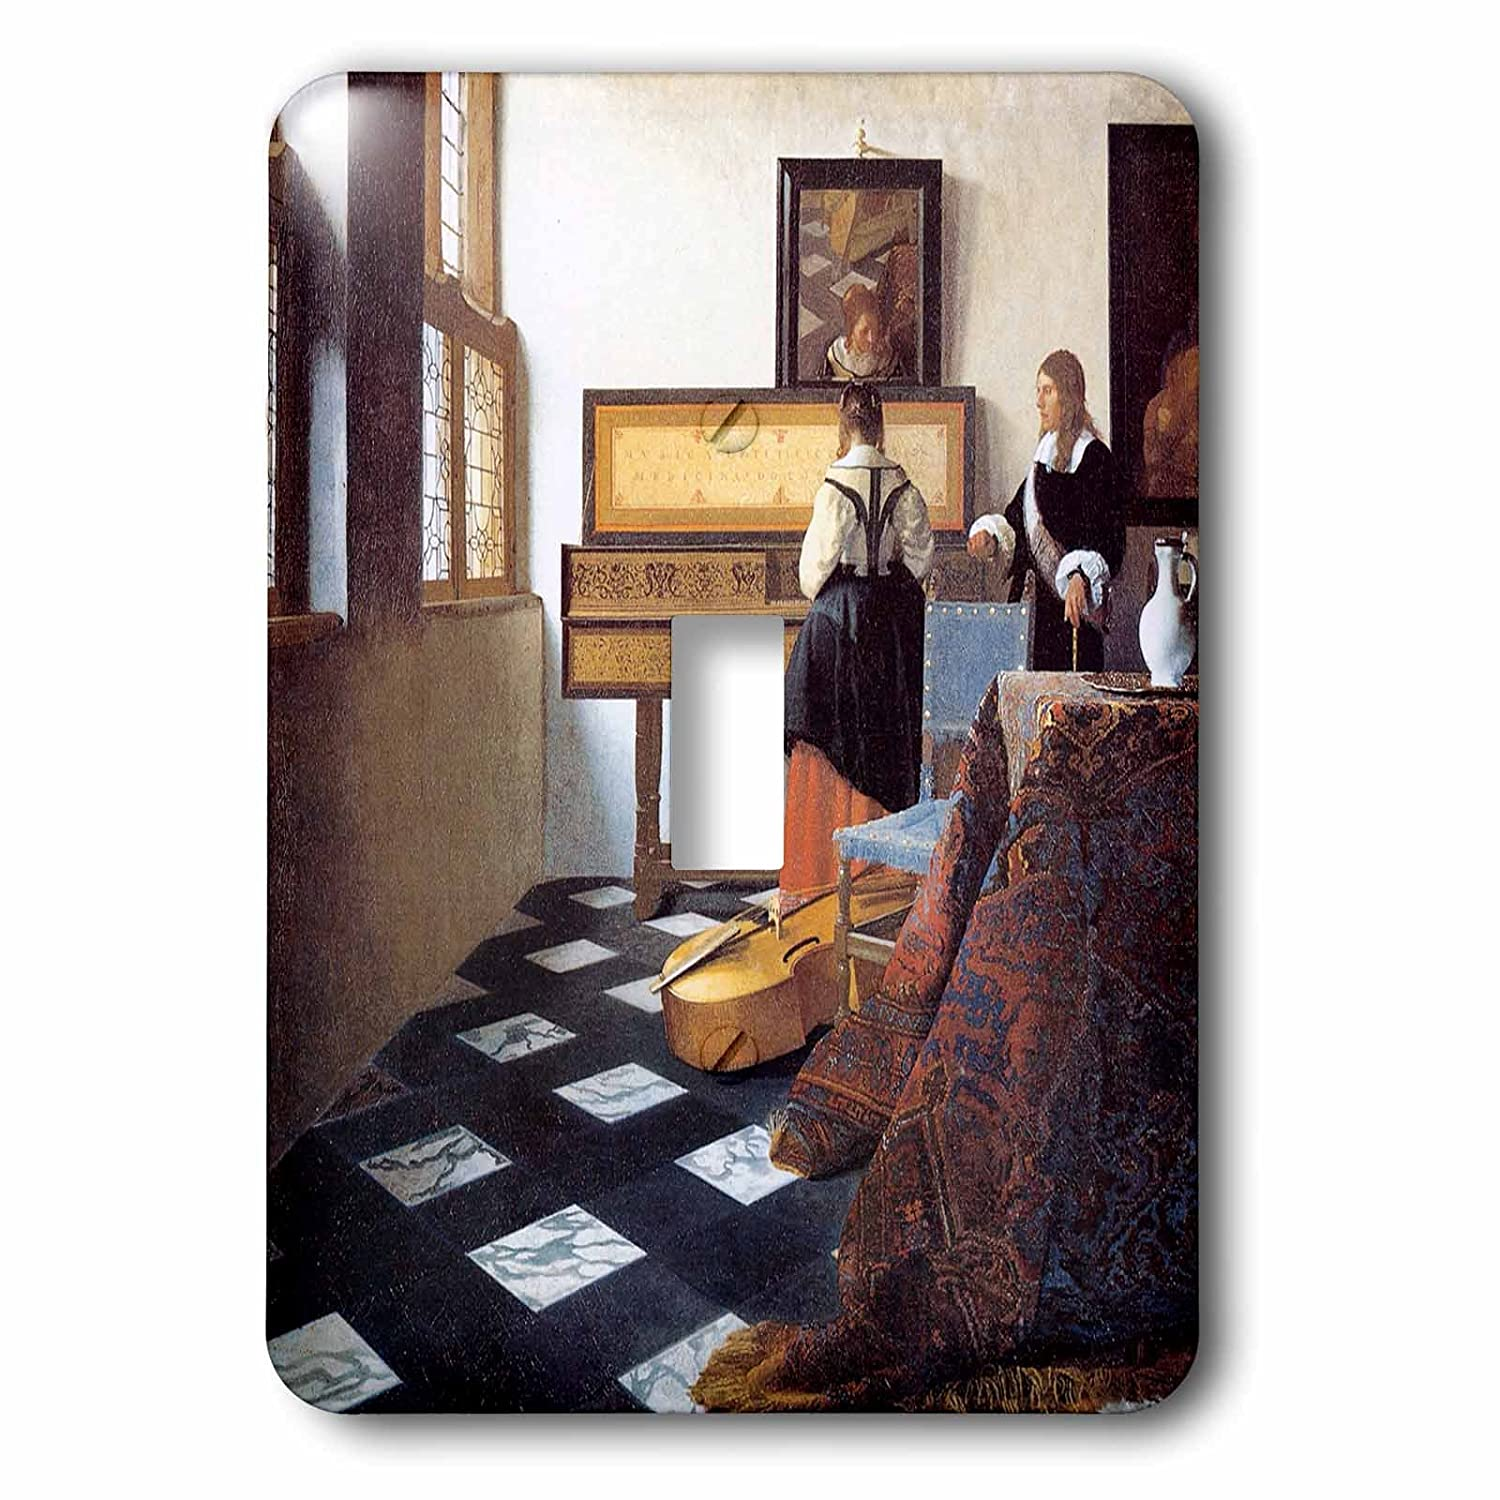 C Girl At The Piano Toggle switch By Johannes Vermeer 3dRose lsp/_175452/_1The Music Lesson